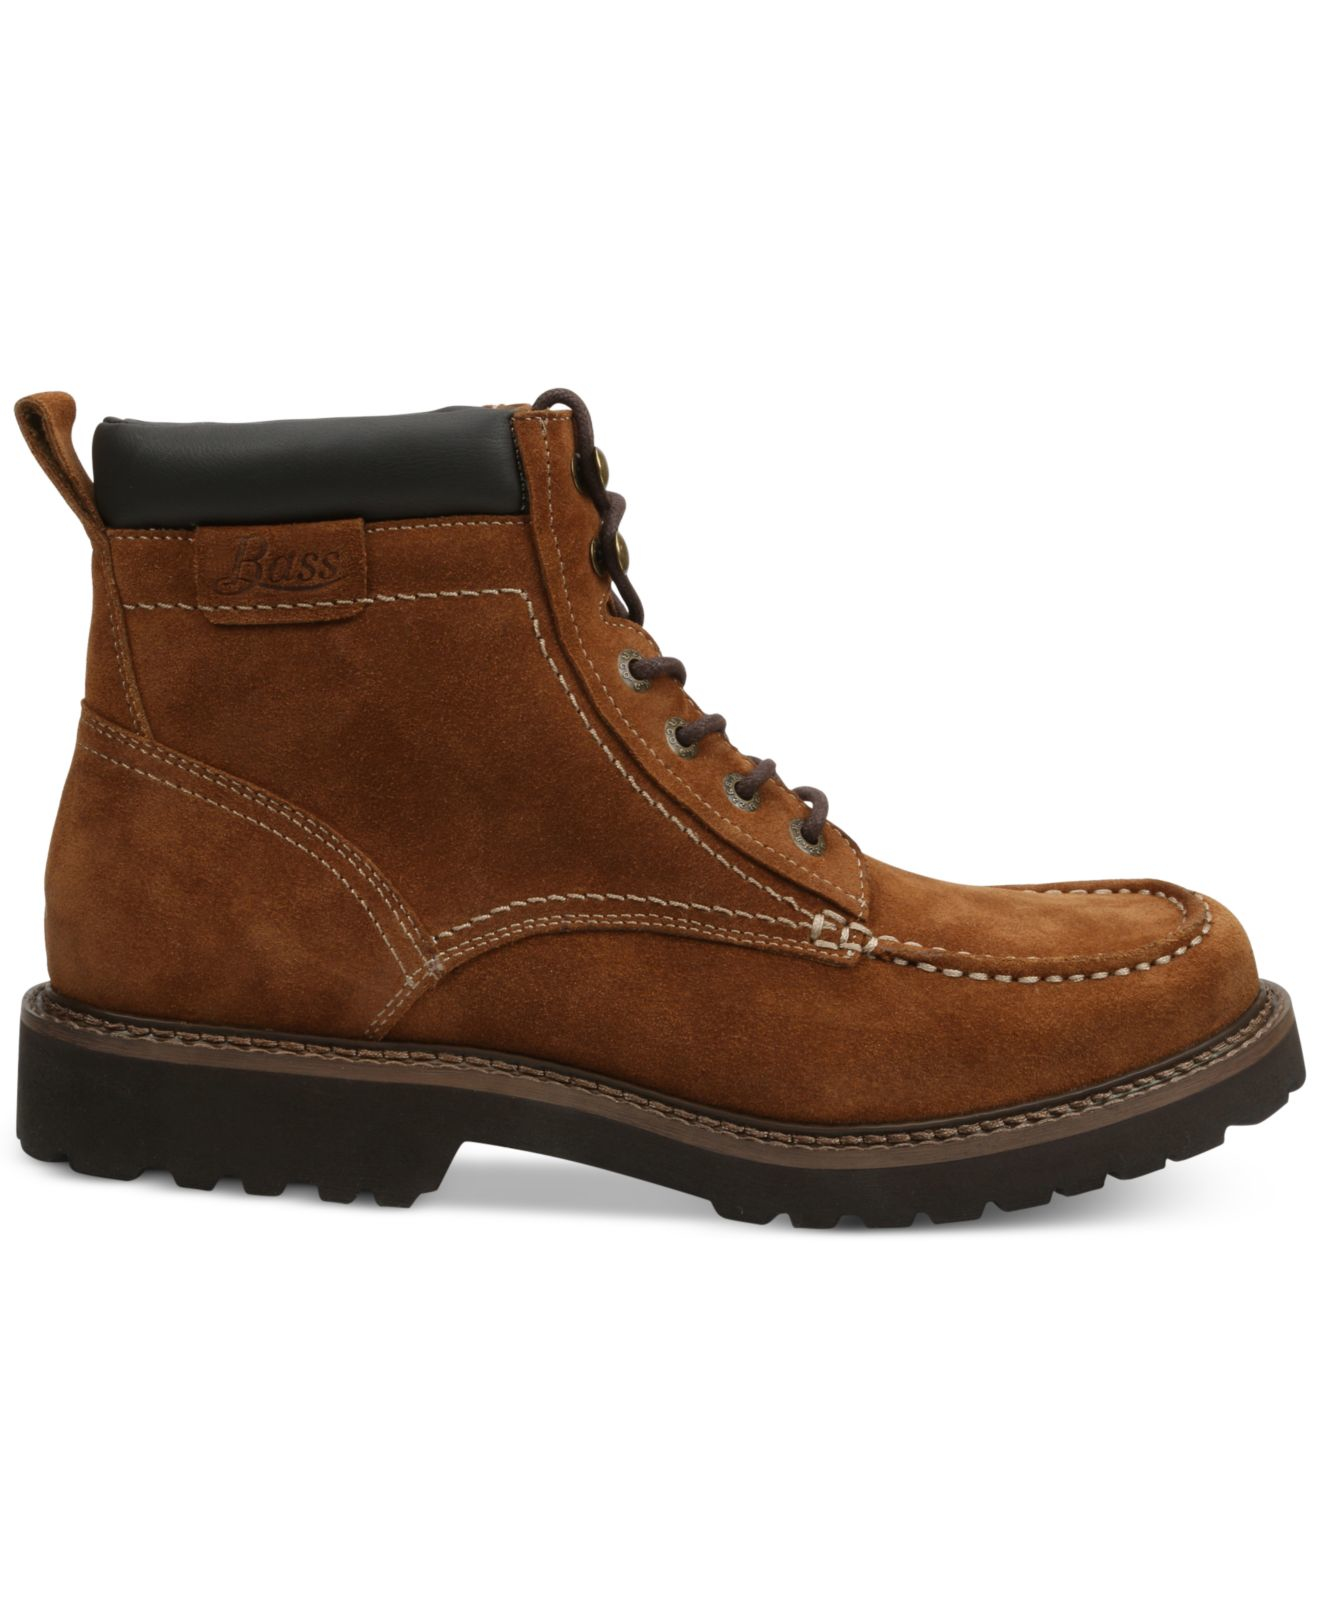 g h bass co errol moc toe boots in brown for rust